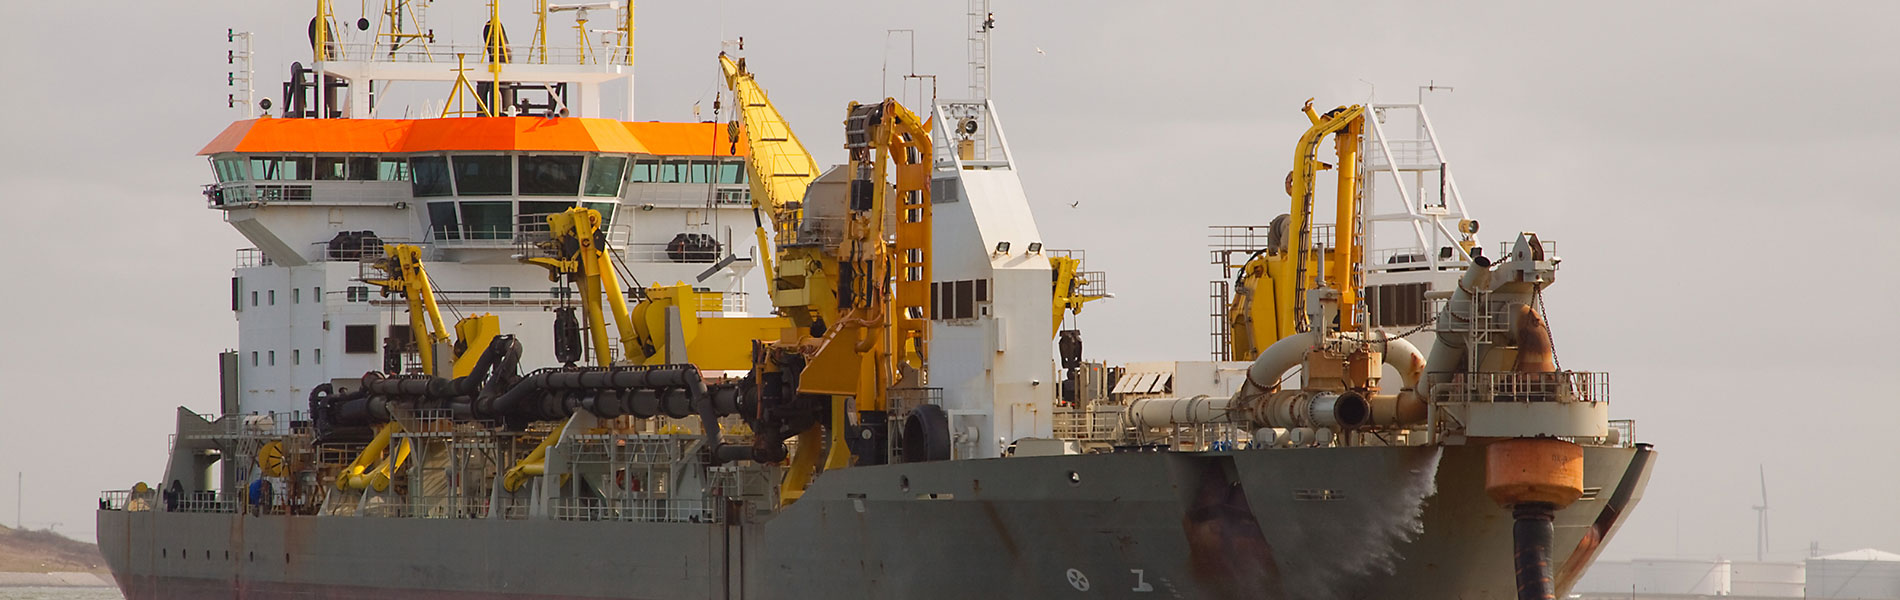 Hopper Dredger